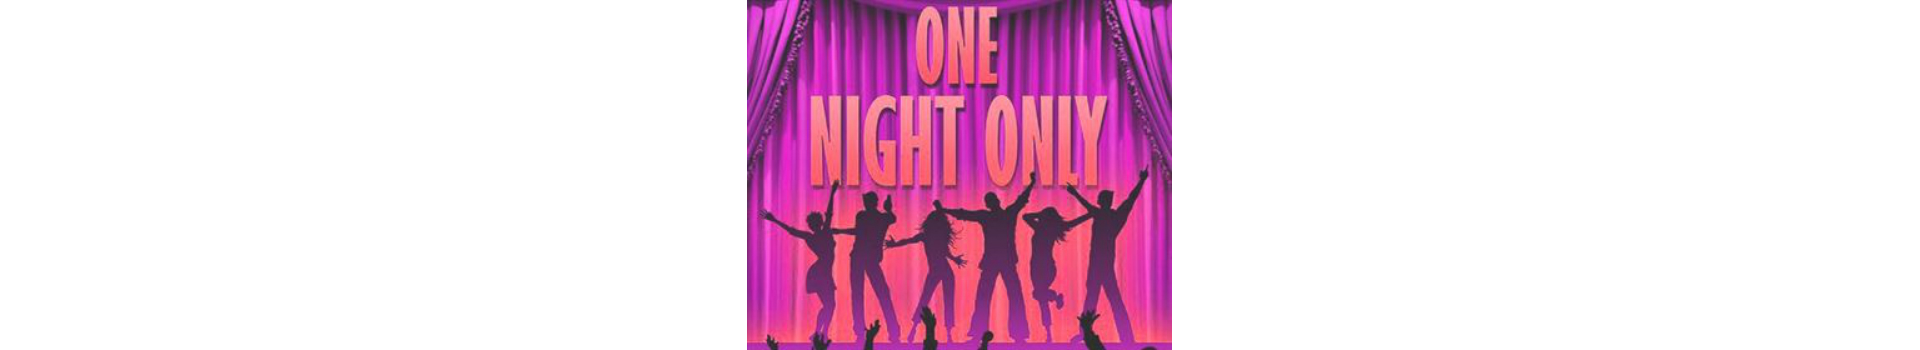 One Night Only!@ The London Palladium banner image